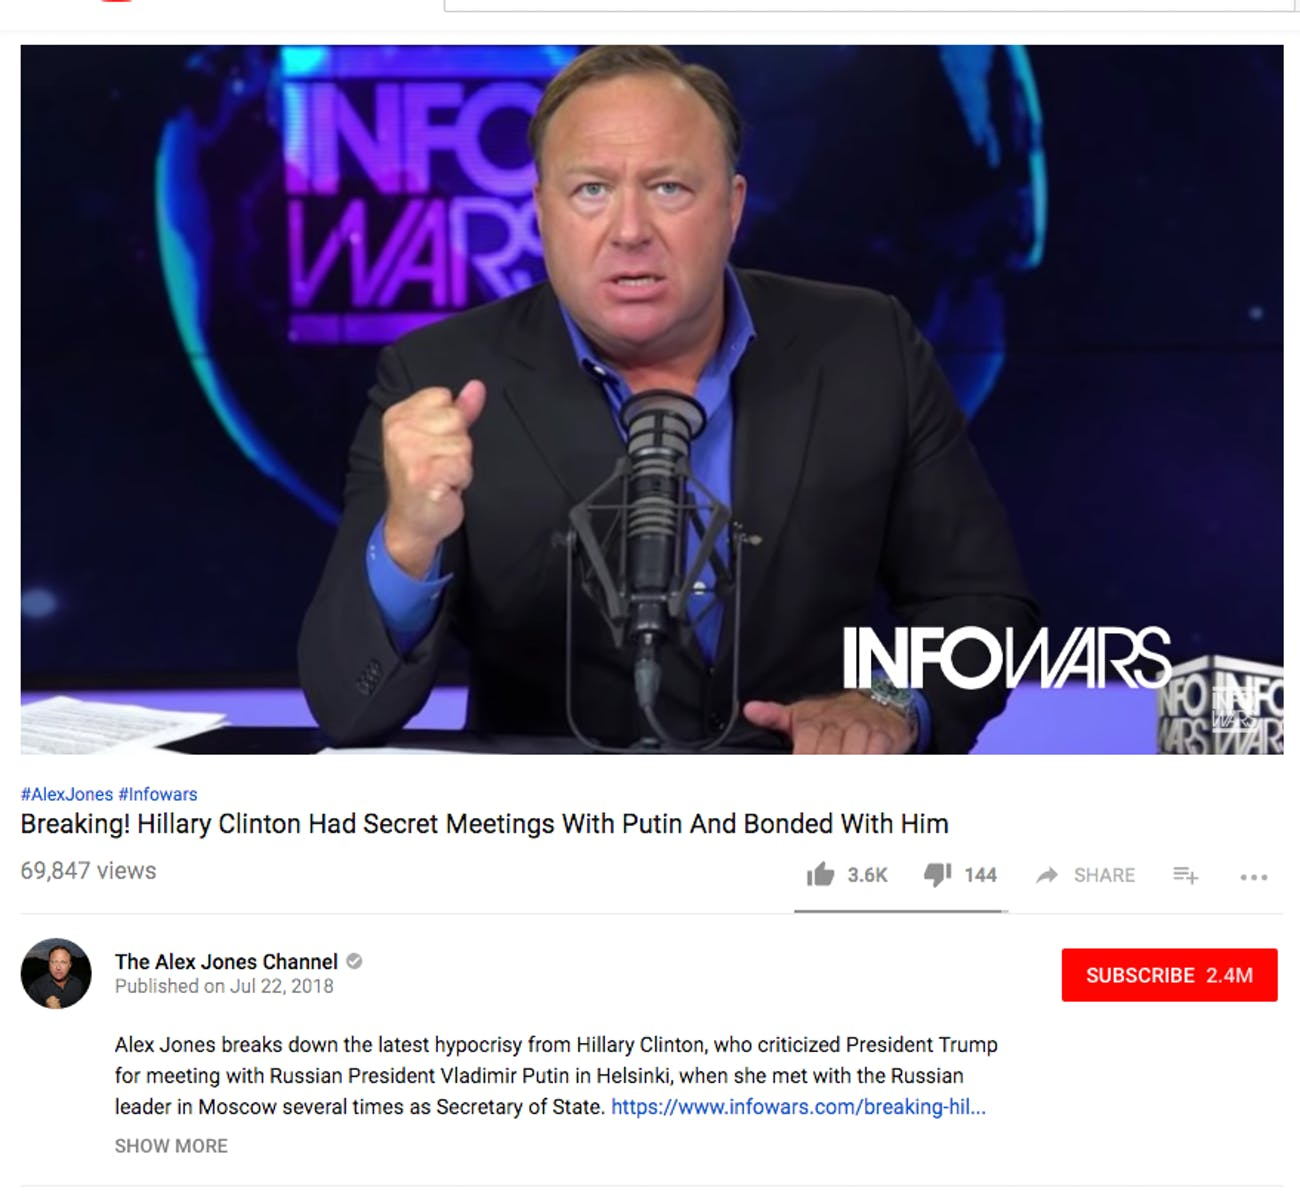 A recent Alex Jones video as it appears on his YouTube channel.